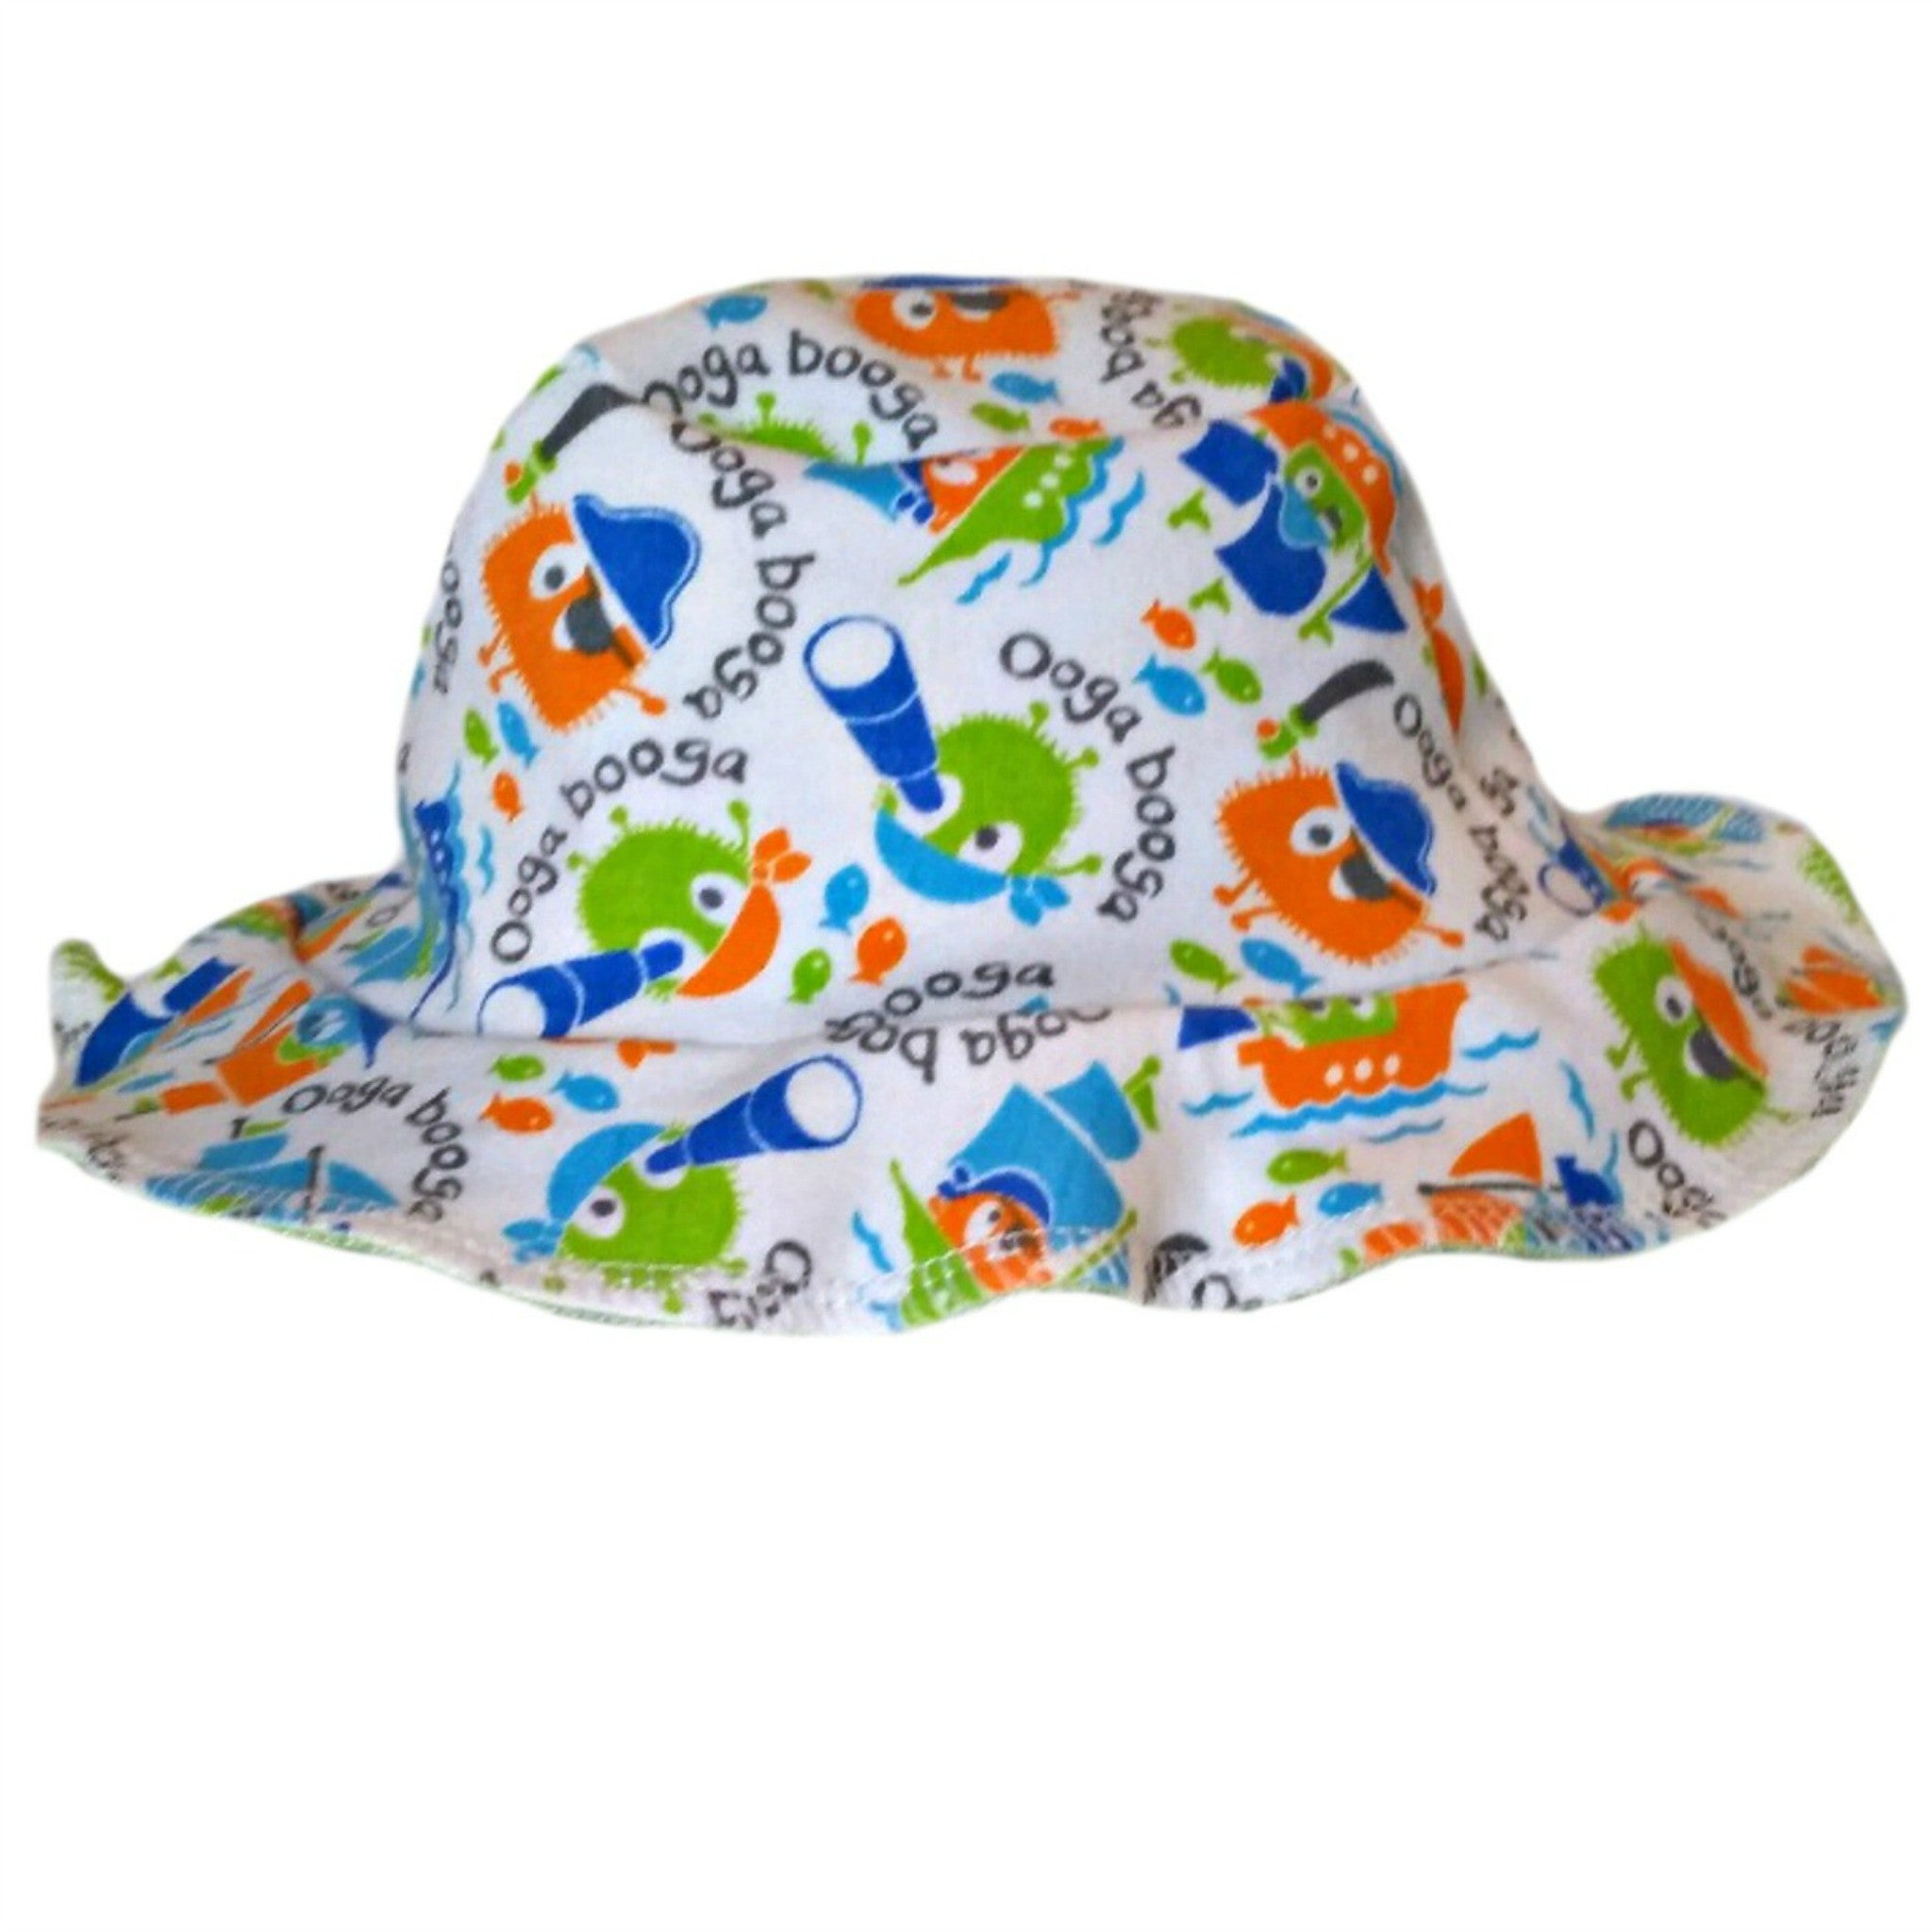 9e4d27307abb8 Baby Boys  Baby Boy Pirate Ooga Booga Sun Hat Sized For Preemie and Newborn  Babies